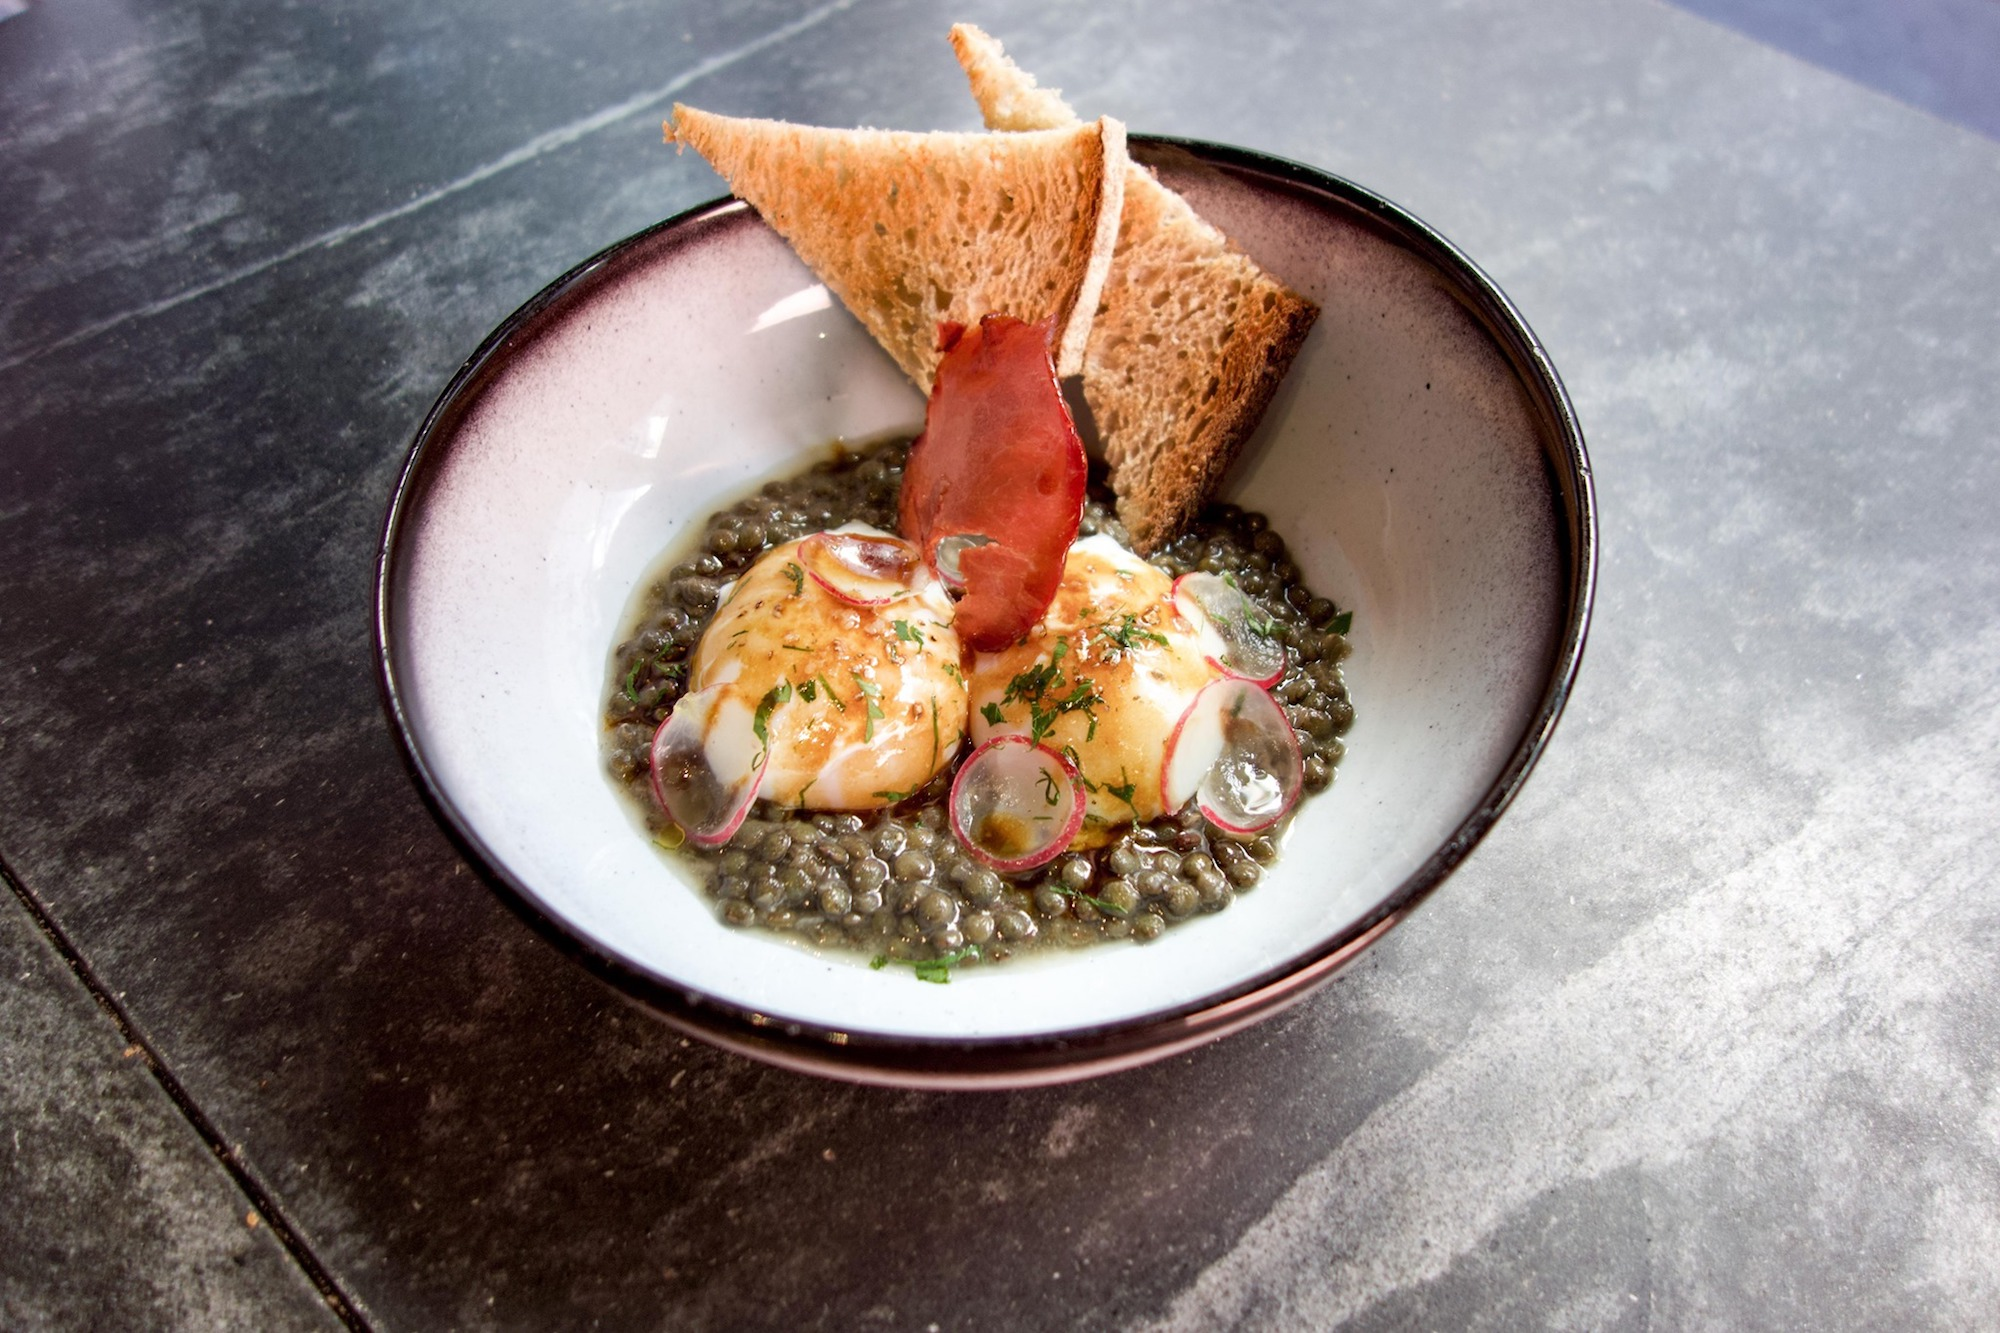 Atelier Maître Albert, a cozy, mode rôtisserie in Paris' 5th arrondissement, offers a simple, yet hearty, dish of lentils, perfectly poached eggs, and toast with ephemeral radish slices.